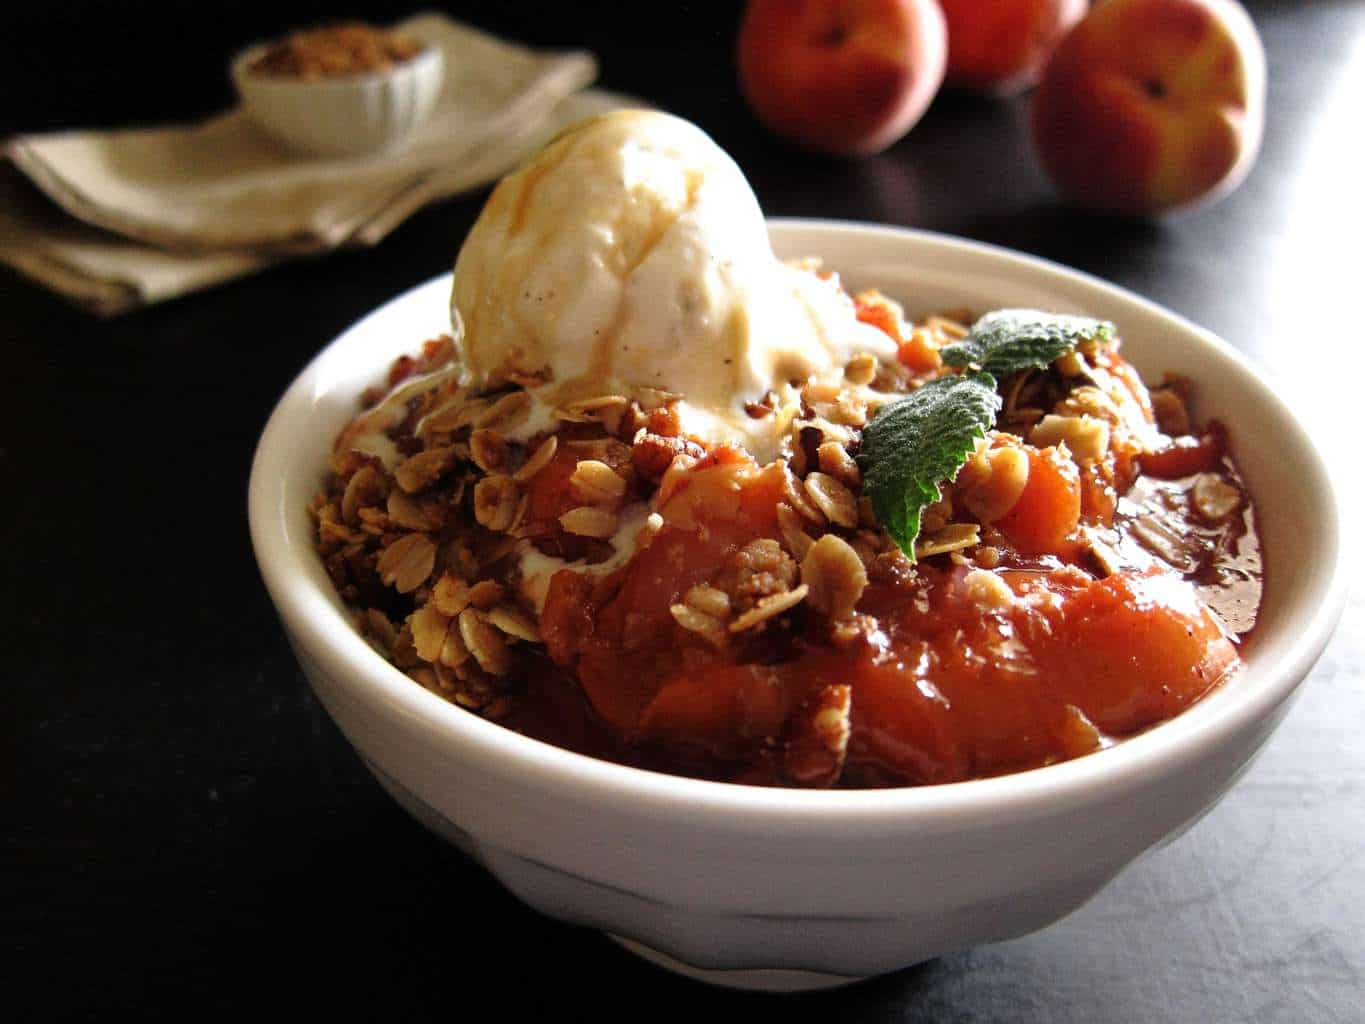 Instant Pot Peach Crisp with vanilla ice cream - Paint the Kitchen Red